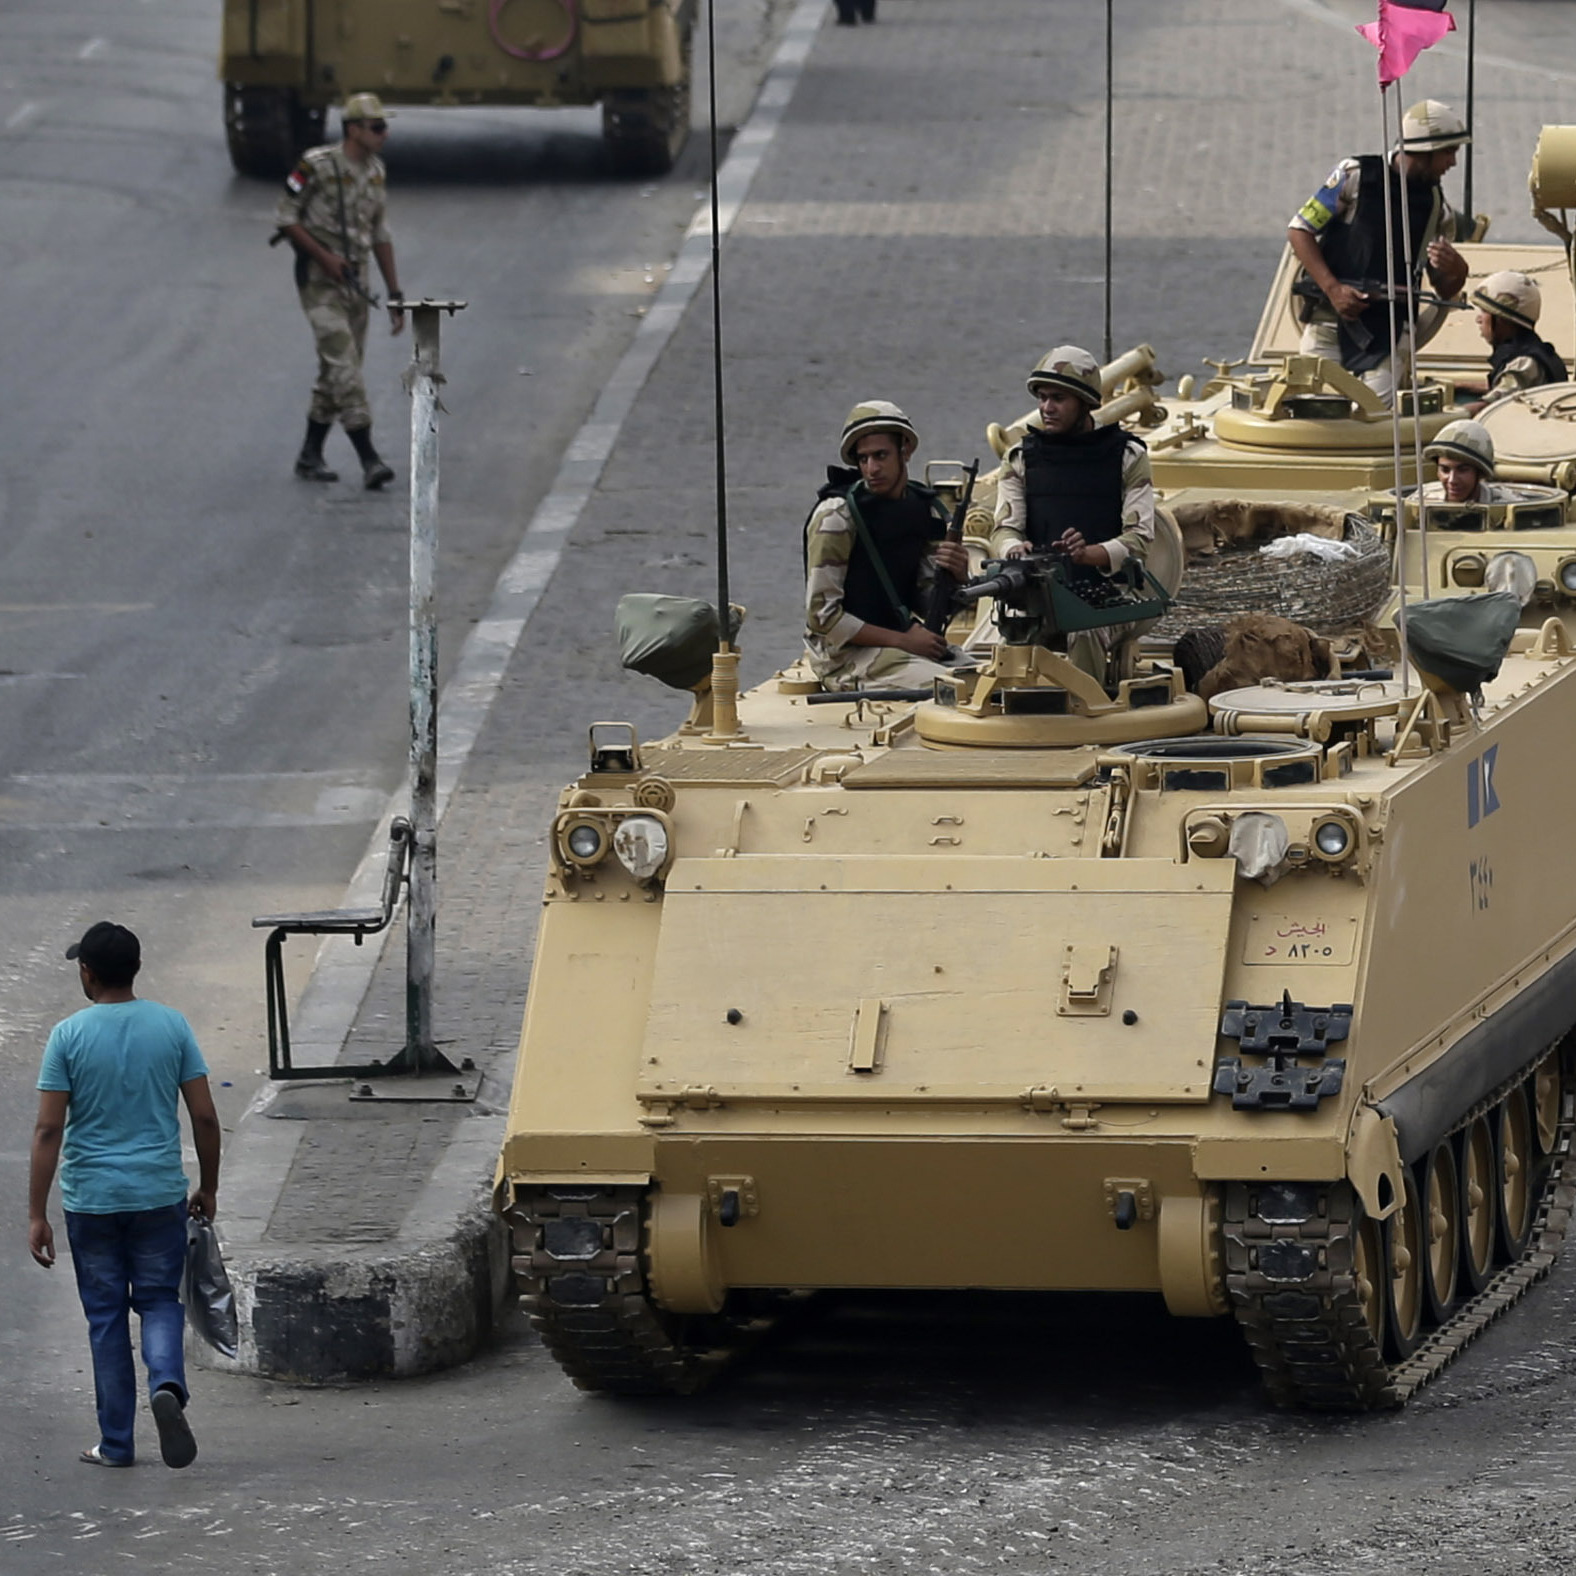 Soldiers take their positions on armored vehicles while guarding an entrance to Tahrir Square in Cairo. Wednesday's crackdown left more than 600 people dead and nearly 4,000 injured.